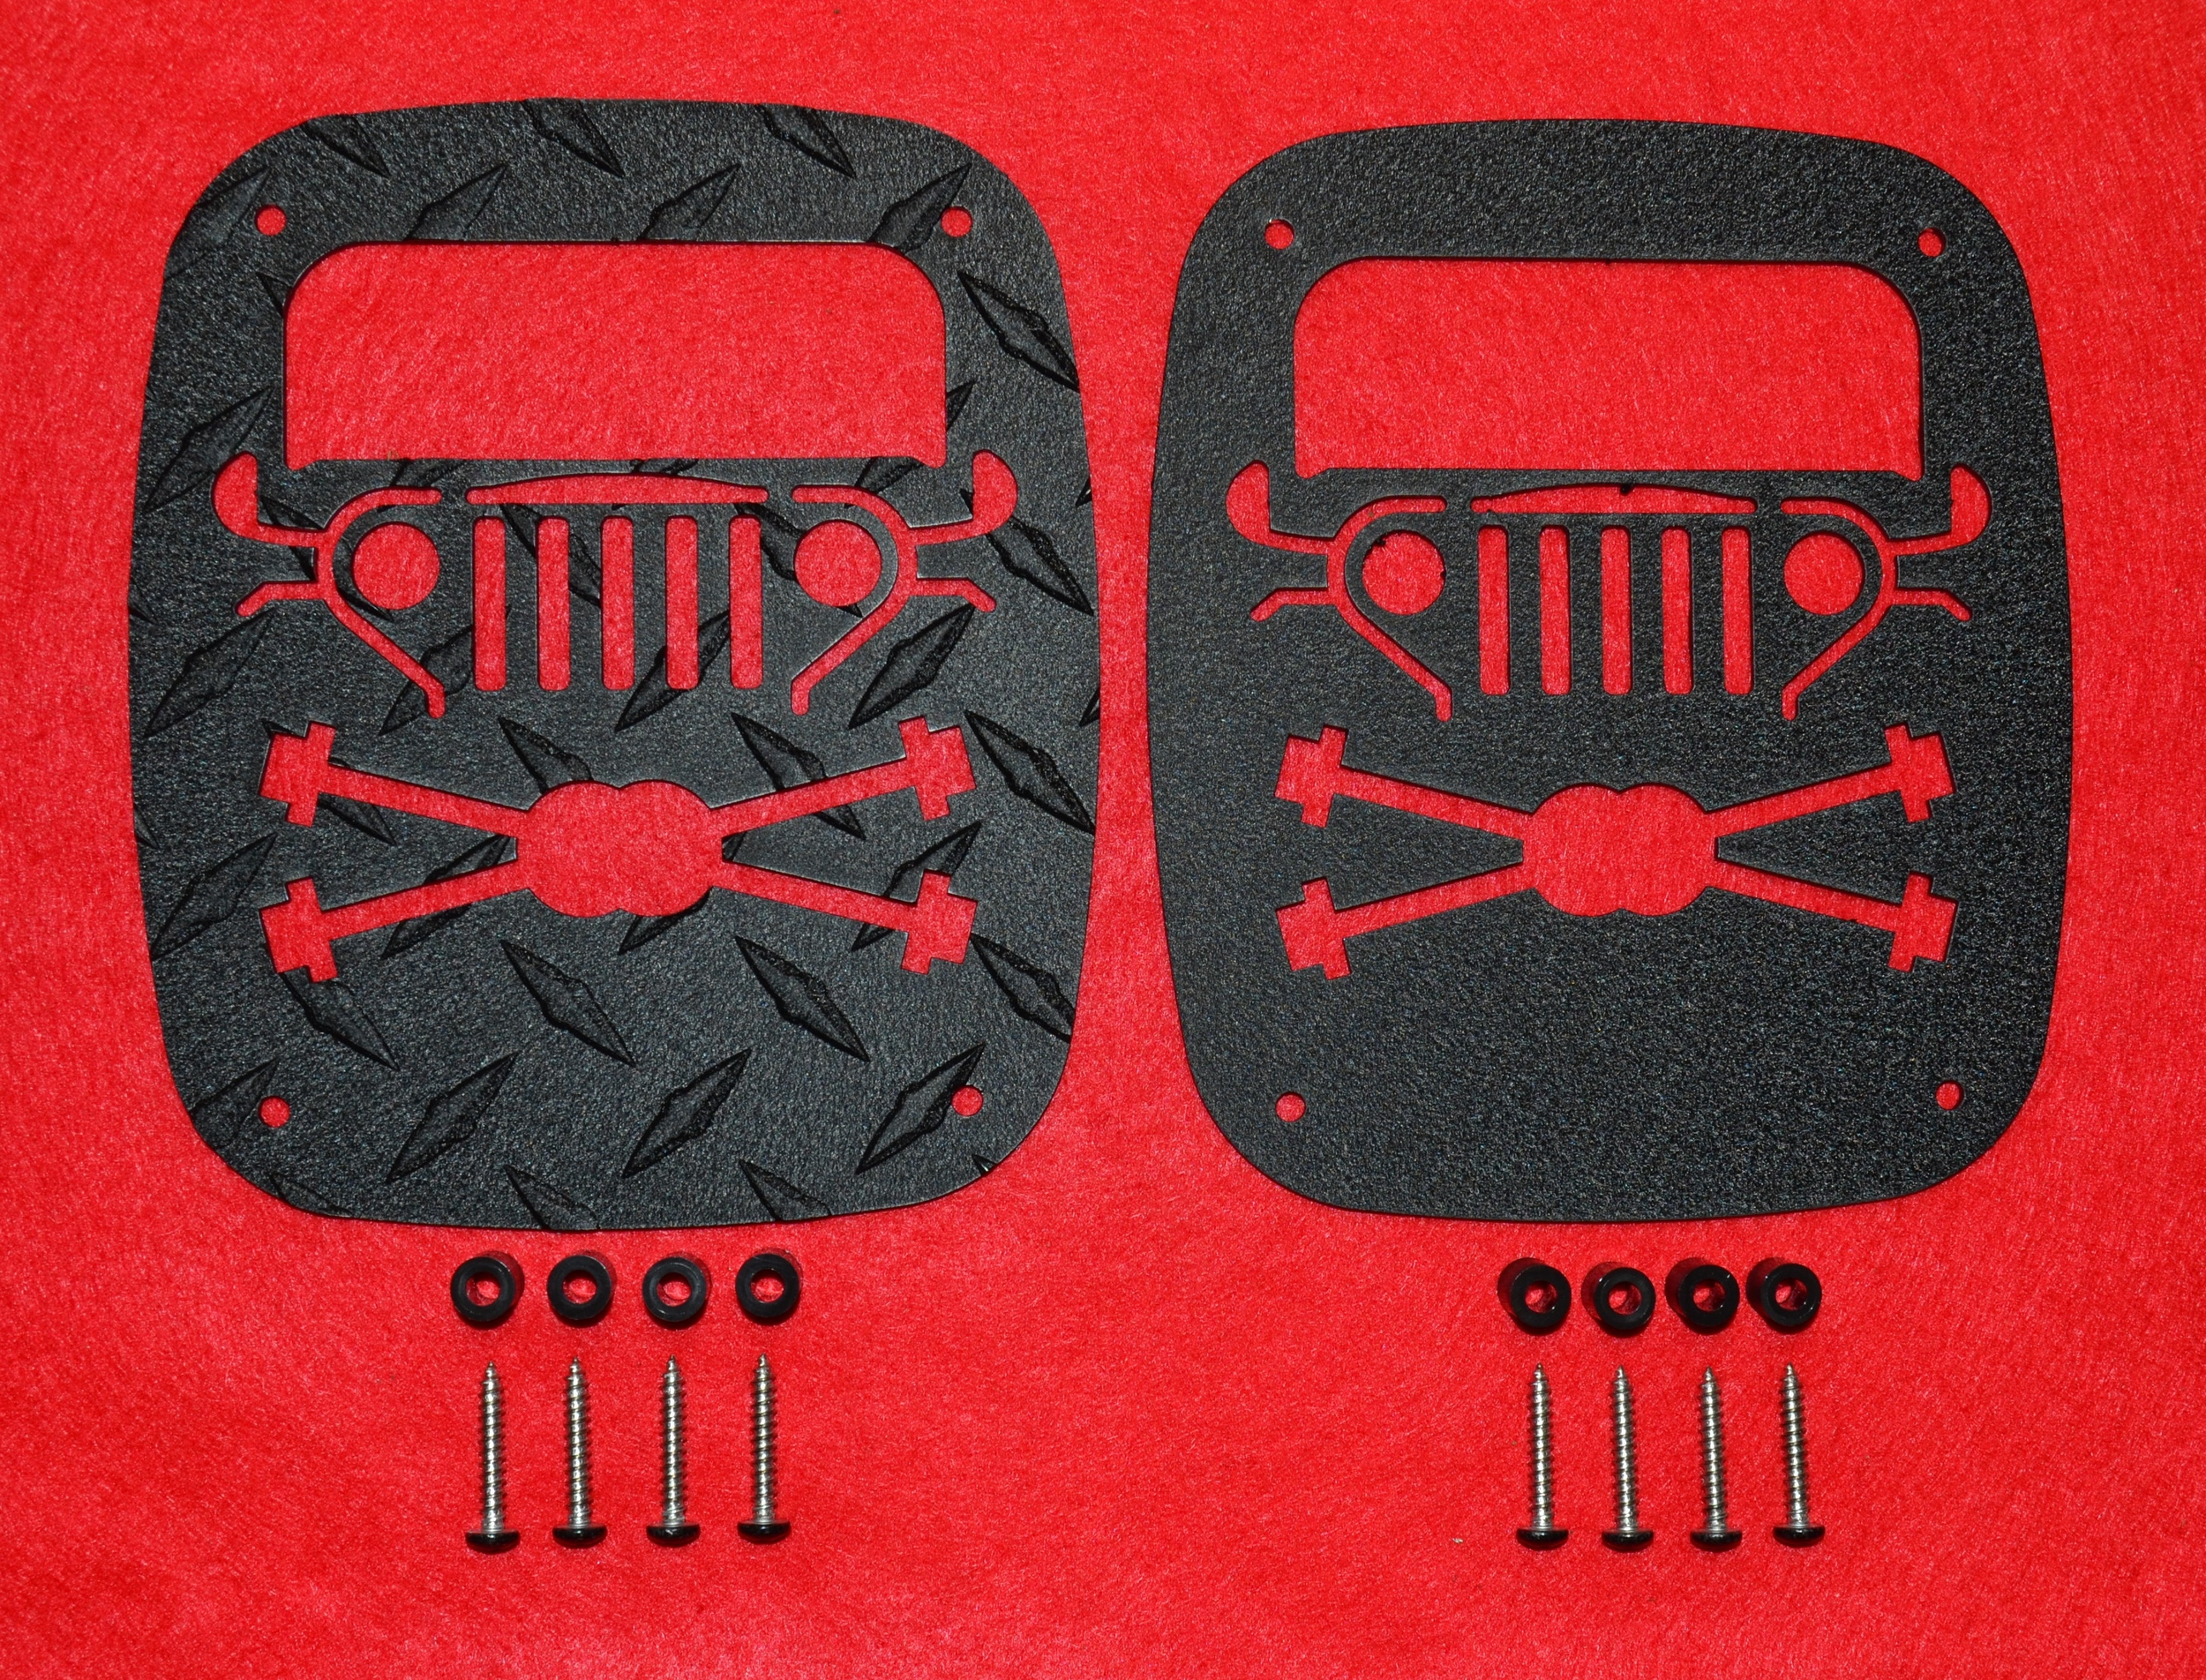 1976 - 2006 WRANGLER GUARDS CROSS AXLE DESIGN SHOWN ABOVE, NEW DESIGN. ALL OUR GUARDS ARE REVERSABLE.